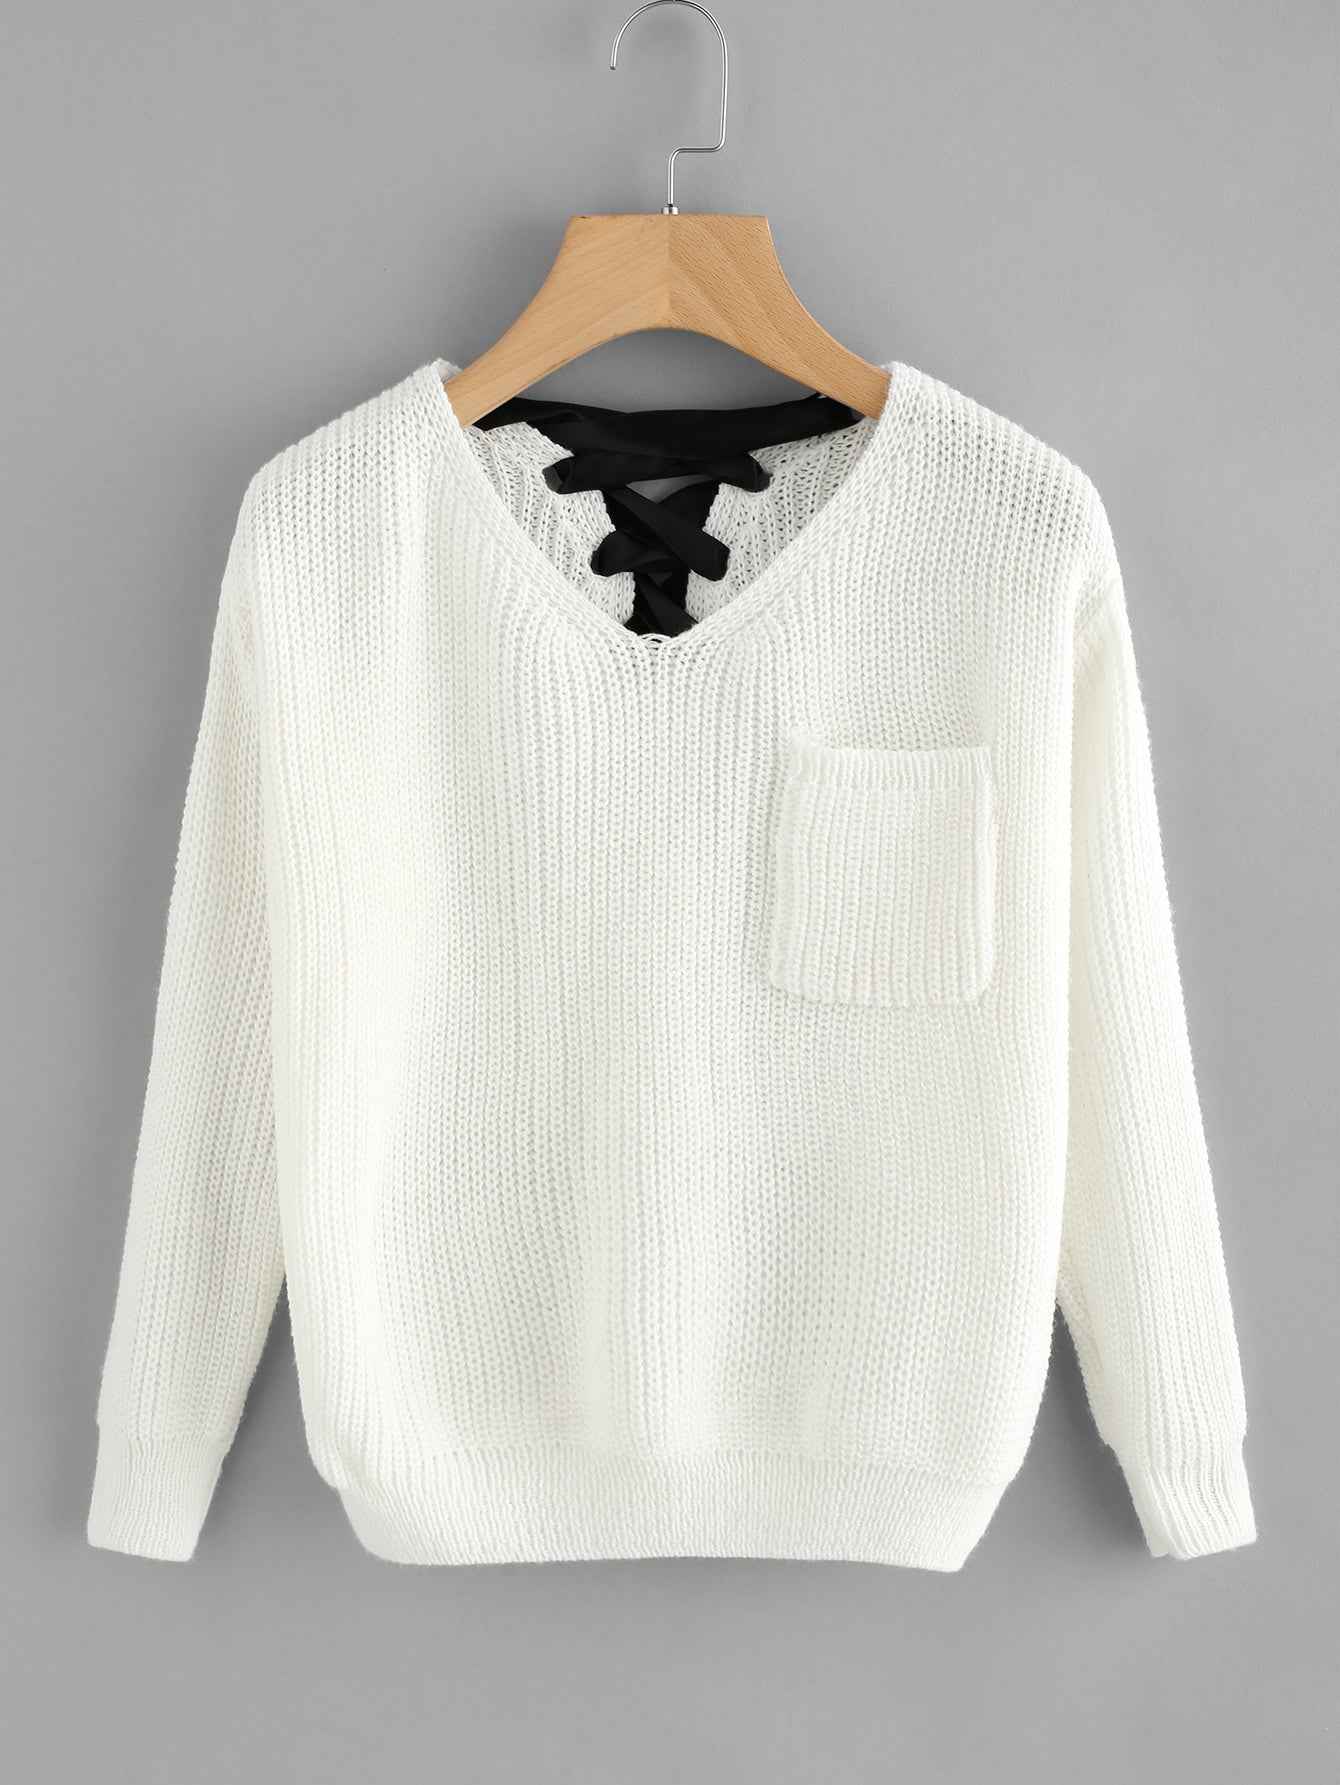 V Neckline Lace Up Back Texture Knit Sweater